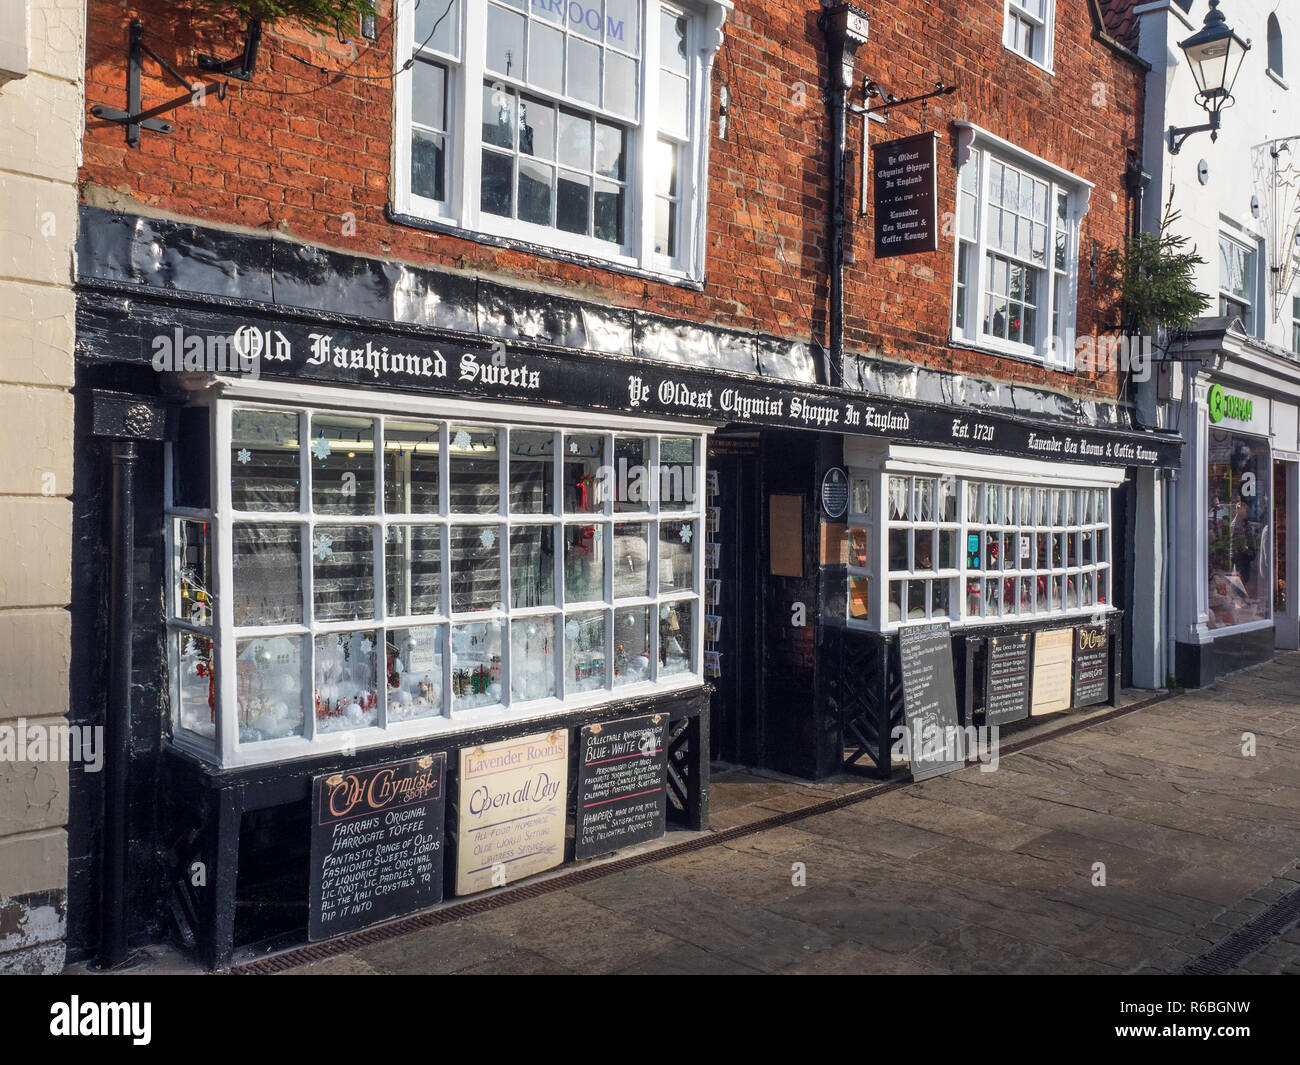 The Oldest Chemist Shop in England and Lavender Tea Rooms Market Place Knaresborough North Yorkshire England Stock Photo